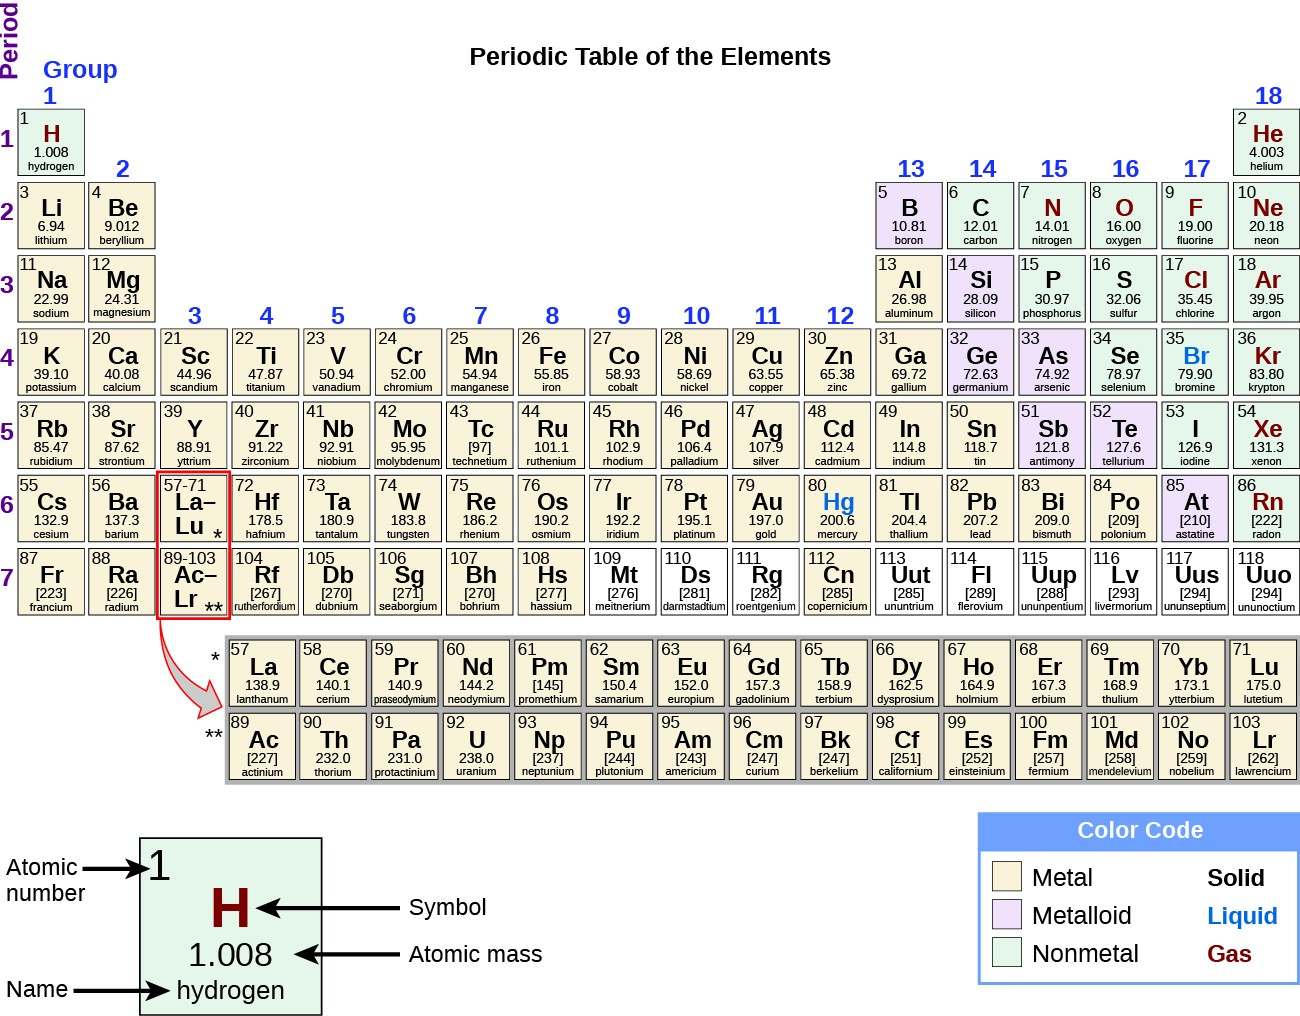 The periodic table chemistry for majors the periodic table of elements is shown the 18 columns are labeled group gamestrikefo Image collections